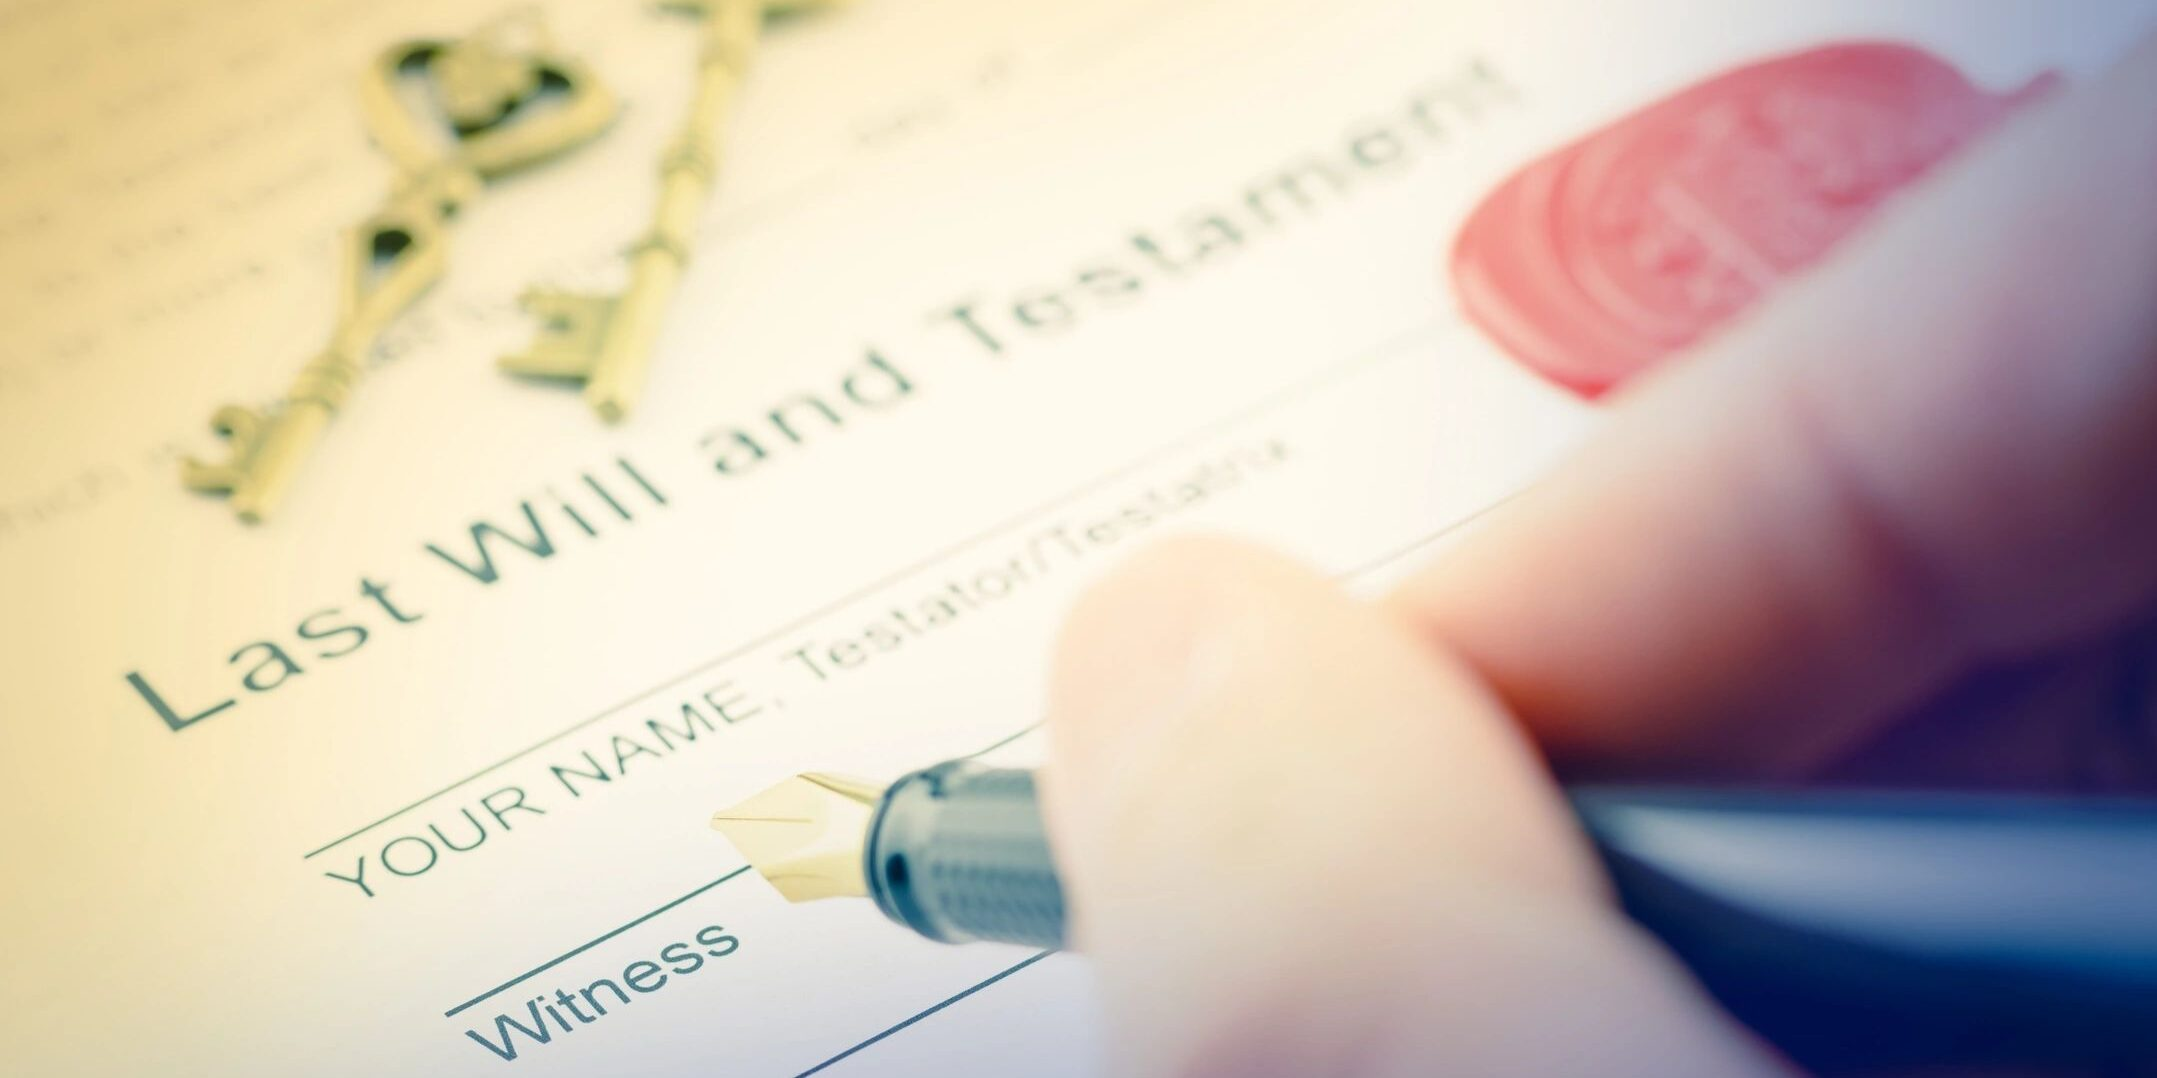 Last Will and Testament and Power of Attorney